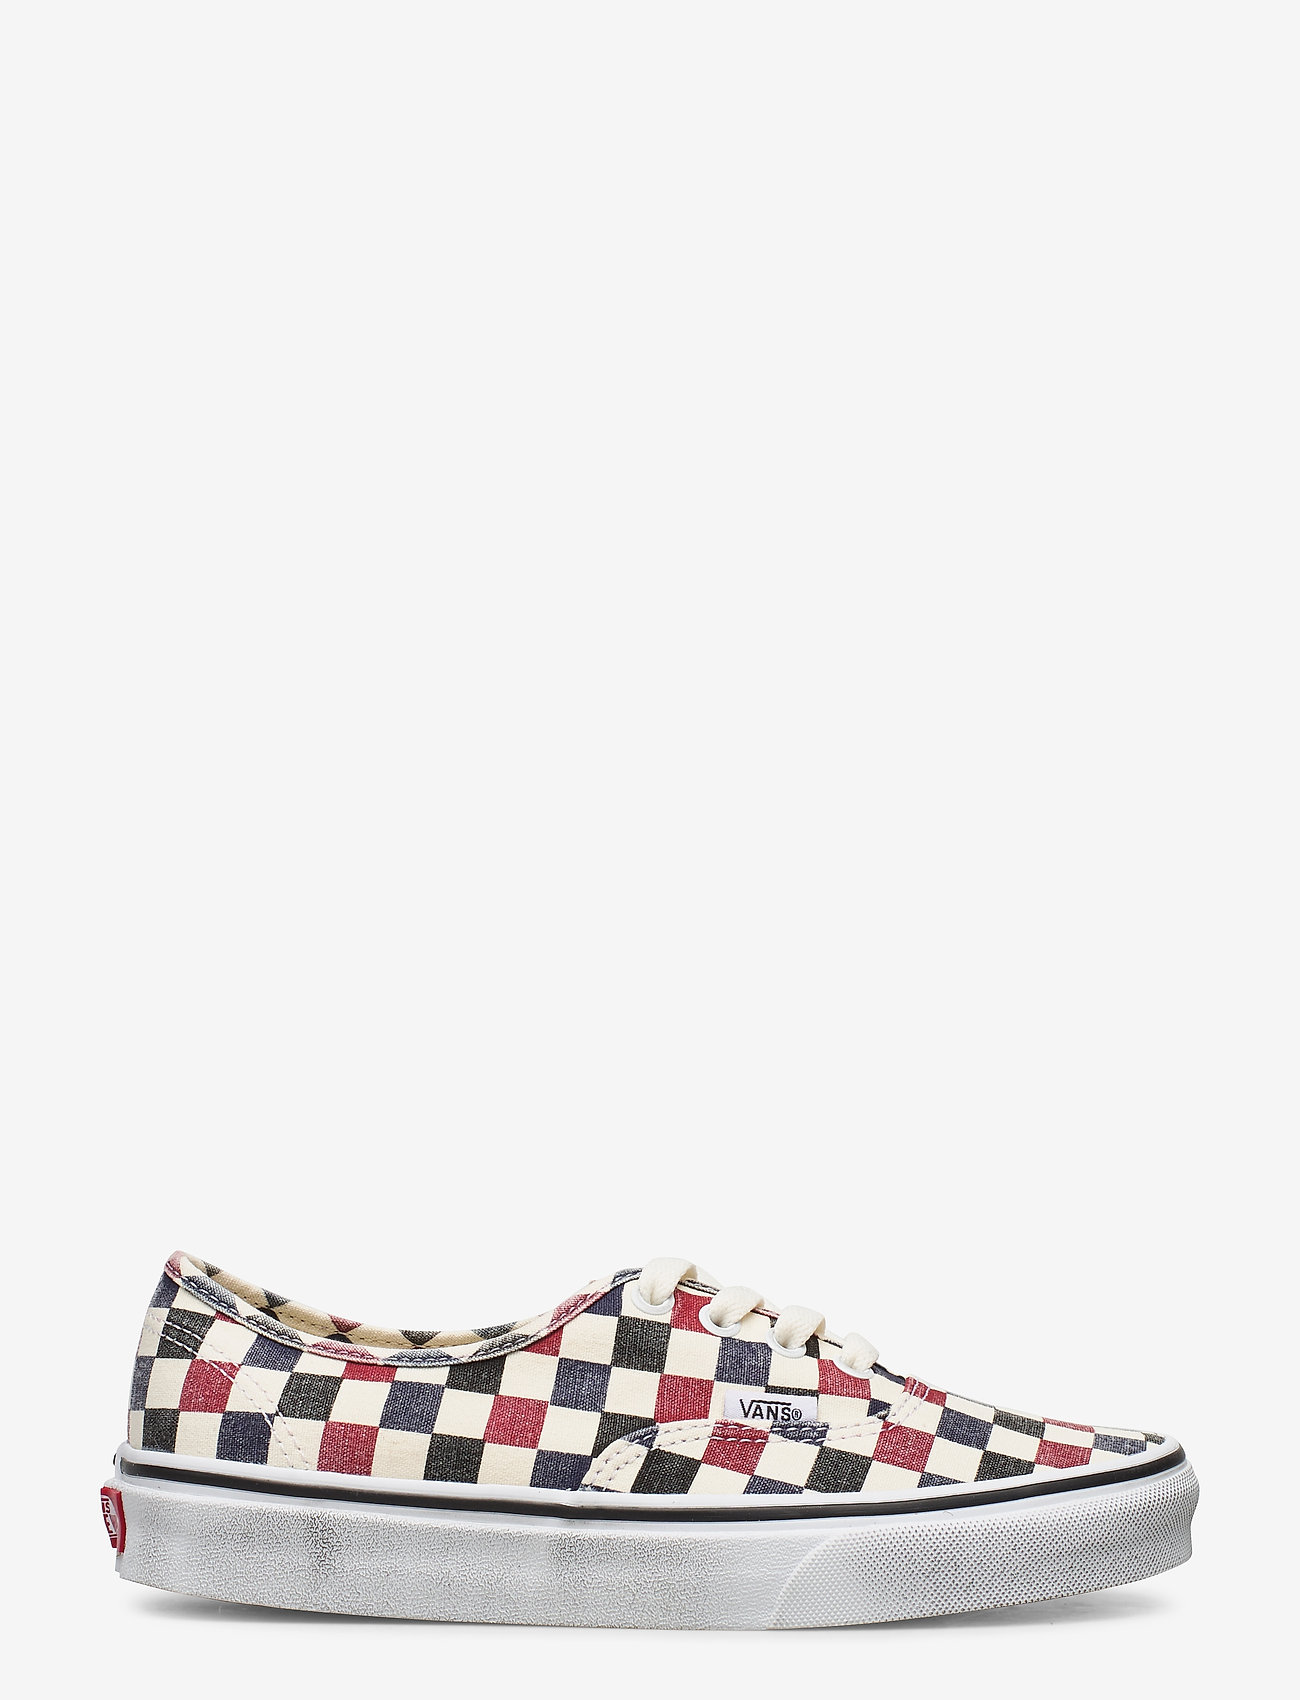 Ua Authentic ((washed)drsbls/chl Pepper) - VANS ypnxGH